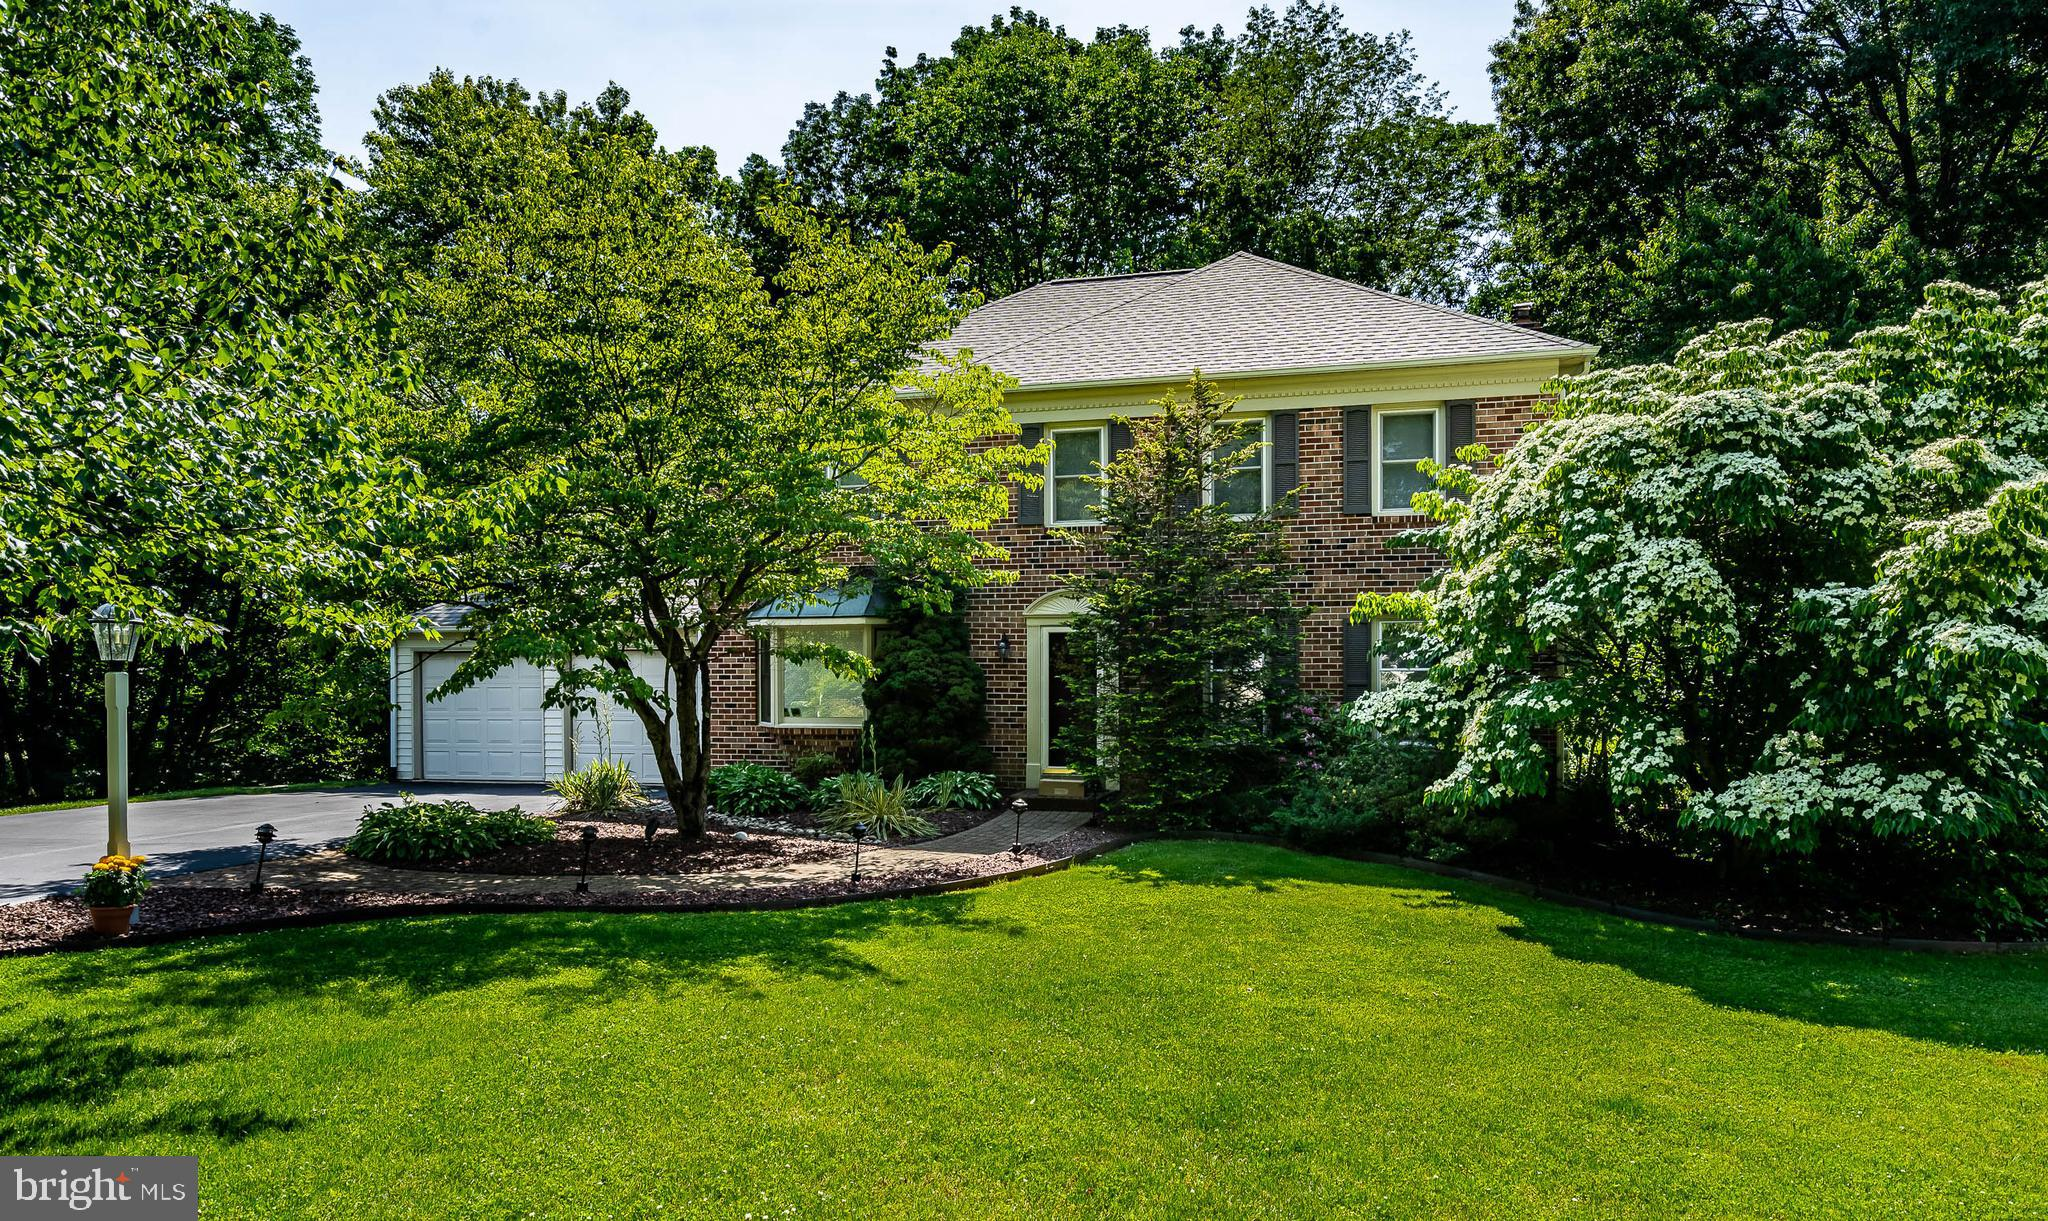 In a park-like setting, on a quiet cul-de-sac, this brick front Colonial's exquisite curb appeal is just the beginning.  Enveloped by lush flowering greenery, its 3/4 acre lot affords privacy and plentiful area to play, entertain, or simply sit back and enjoy the surrounding natural beauty.  Just off the hardwood entry is a large living room that can handily double as a playroom for families needing less formal and more casual living space.  The formal dining room features hardwood flooring and a lovely bay window. The eat-in kitchen shines top to bottom, with abundant recessed lighting and gleaming hardwoods.  A center island offers additional workspace as well as barstool seating for two.  A double sink, tile backsplash, smooth cooktop range, dishwasher, custom built-in refrigerator, generous white cabinetry, built-in desk/nook, and large pantry all combine to provide for easy meal prep in a fresh-as-spring-like atmosphere.  Immediately adjacent to the casual dining area, the family room keeps the light, bright vibe going with an all-white gas log fireplace brick surround and natural light flowing in from the French doors that connect to the spectacular outdoor living spaces.  The opposite side of the kitchen conveniently provides a combination mudroom/laundry room with garage access and an adjoining powder room.  The washer and dryer convey with the home.  Upstairs, enjoy restful nights and refreshing mornings thanks to four generously sized bedrooms and two full baths.  The primary bedroom with ceiling fan, new skylight, oversized window with nature view, has a private bath with dual vanity and large step-in shower.  Three additional bedrooms also feature ceiling fans and share a full bath with double sinks and tub/shower combination.  The daylight basement, with sliders to the back yard, has been finished to provide welcome extra space for a recreation or media room, a place to set up a personal gym, and plenty of storage space.  Outdoors, family and friends ar